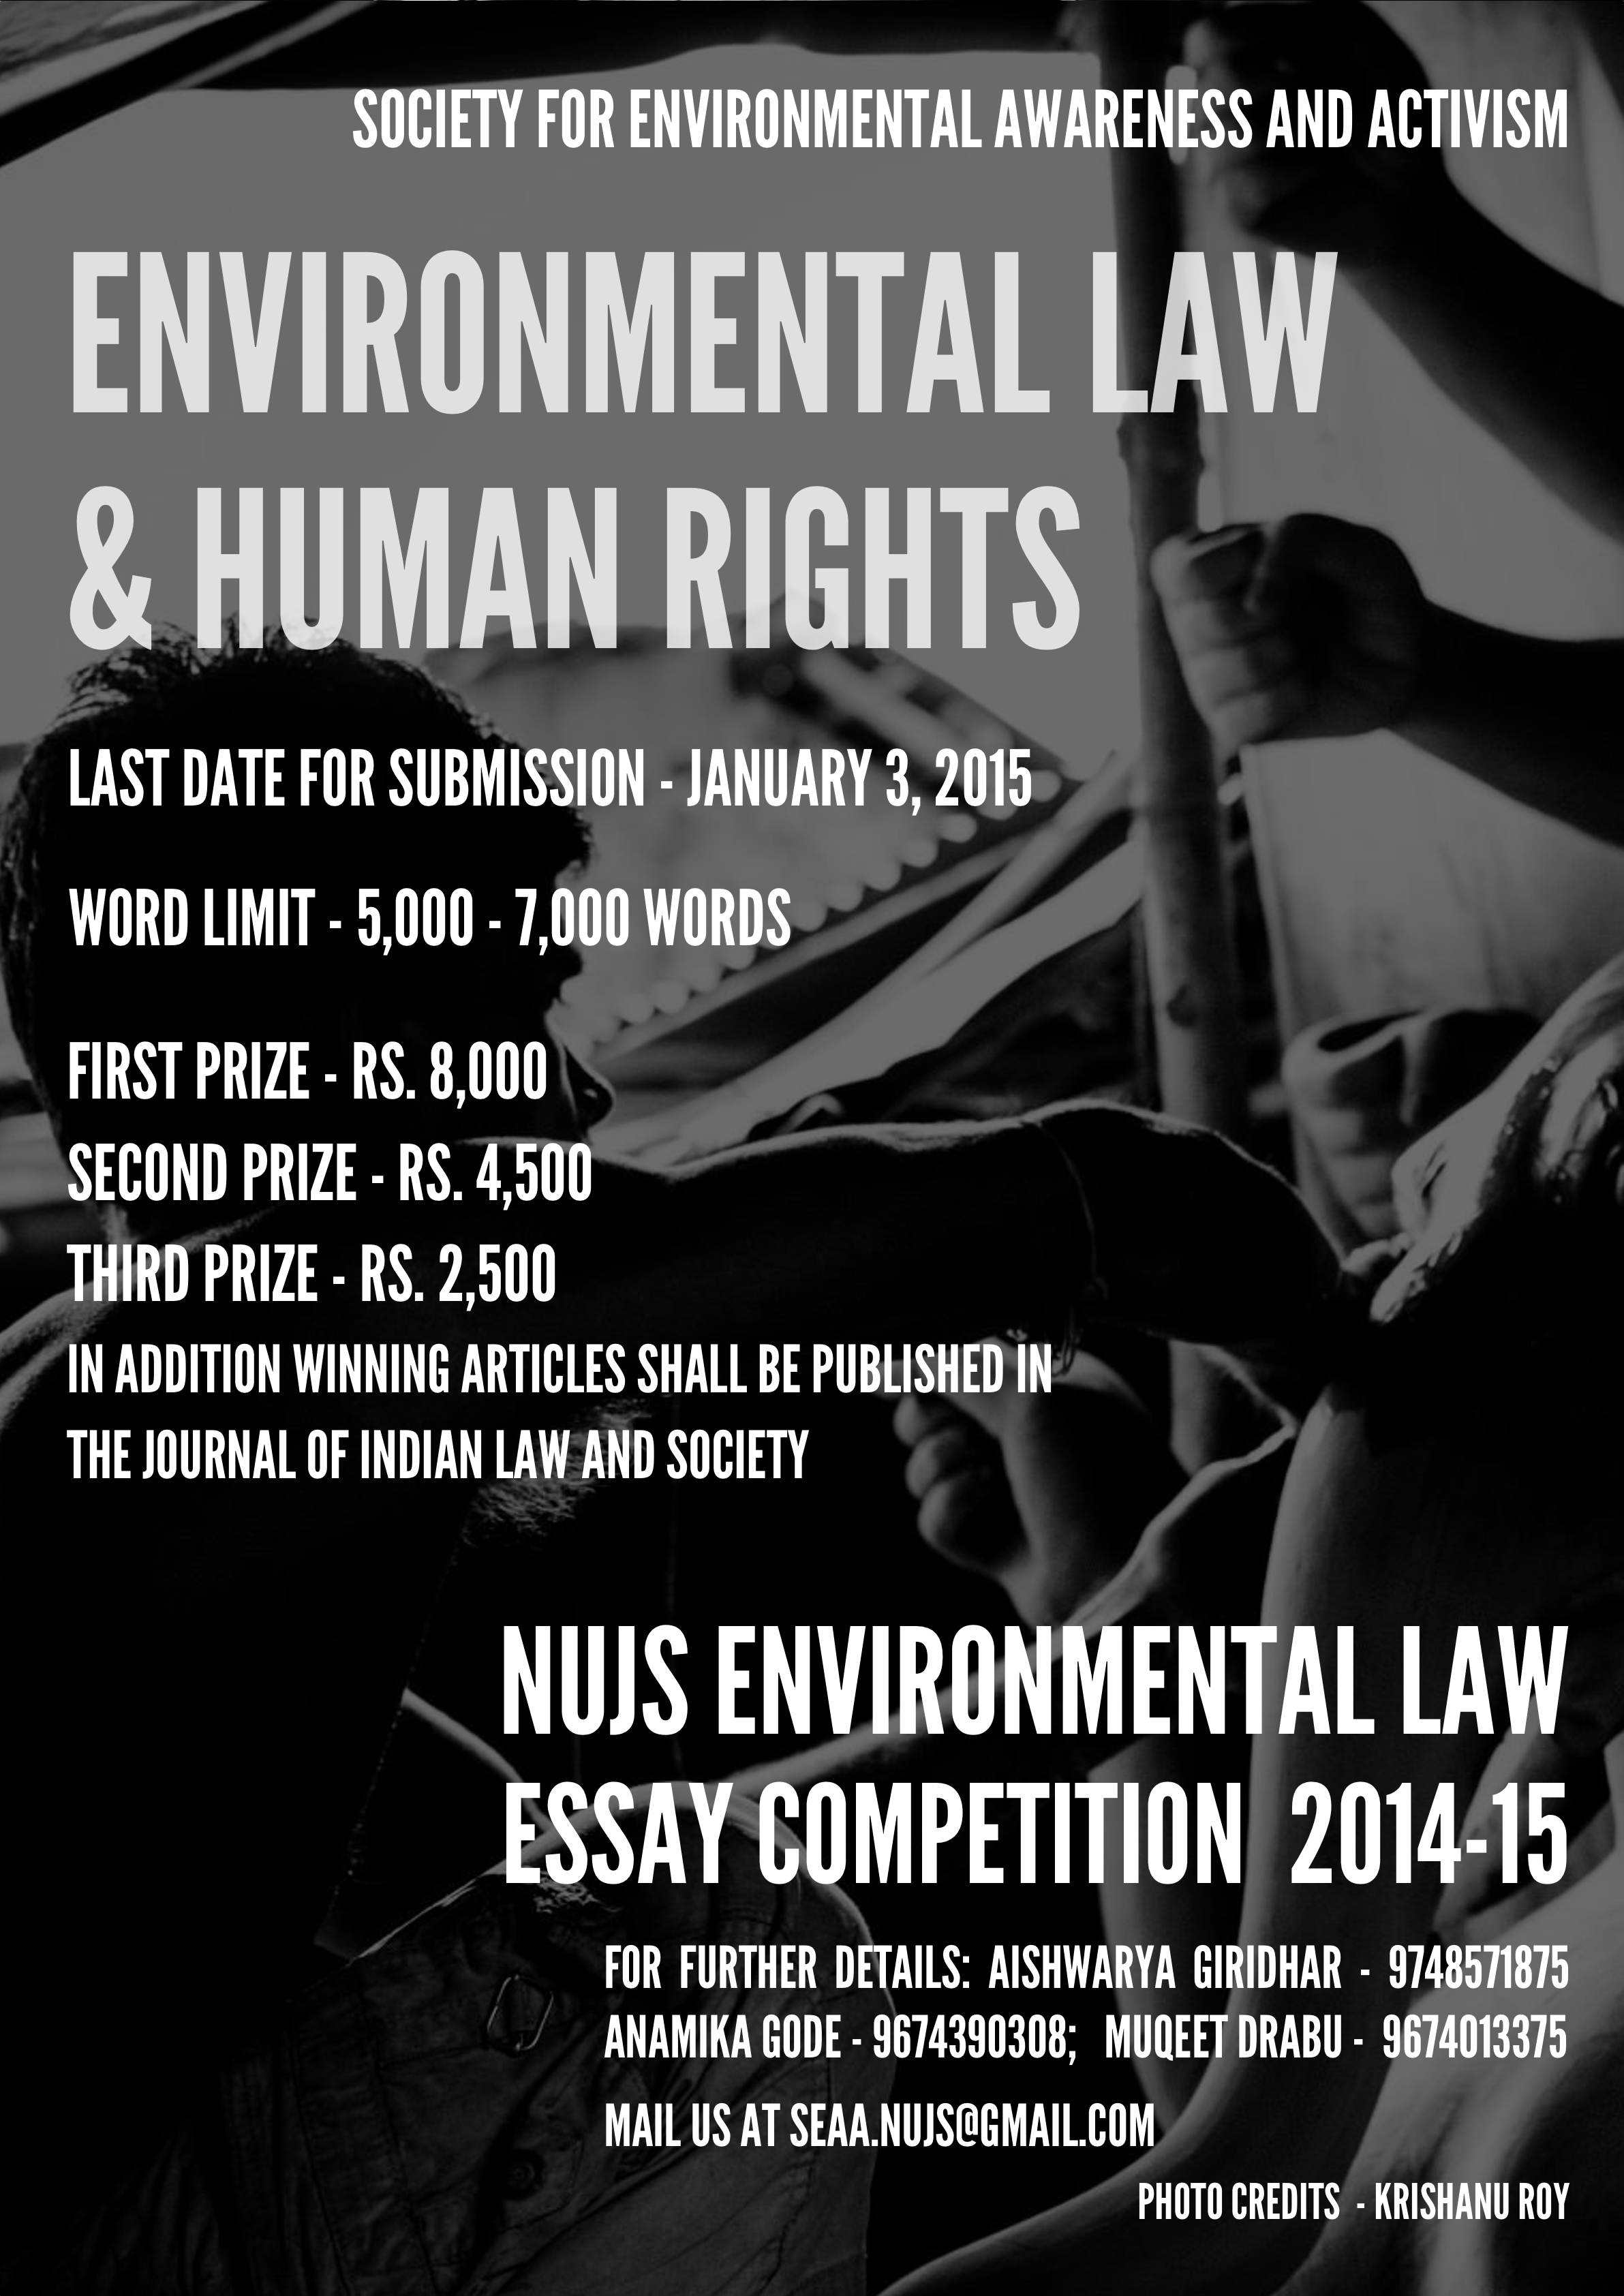 environment education eco generation environmental essay competition ...